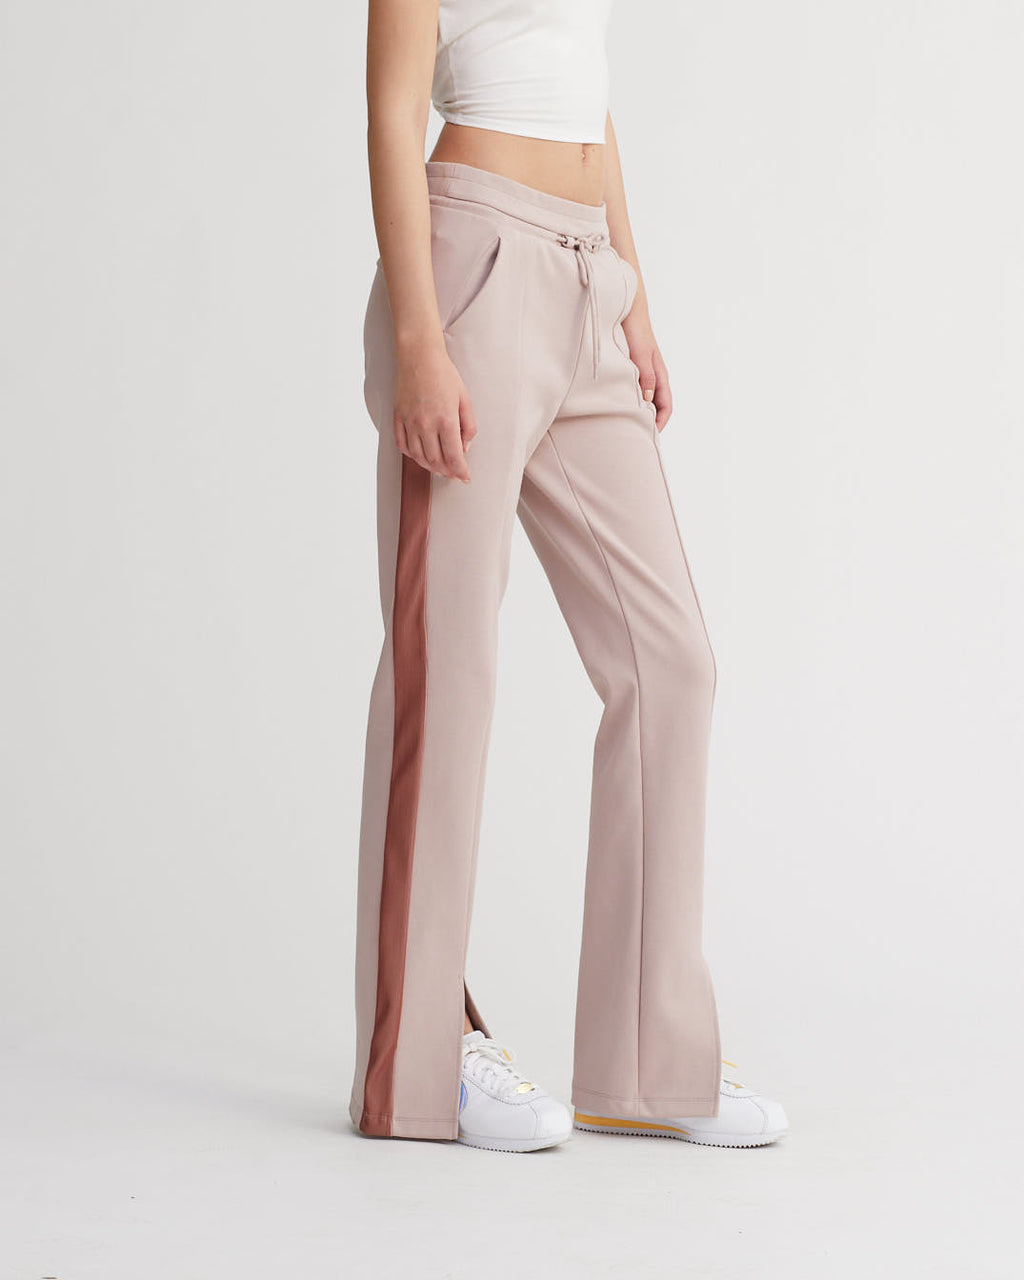 KASSIE PANTS IRIDESCENT SIENNA & PALE ROSE COMBO